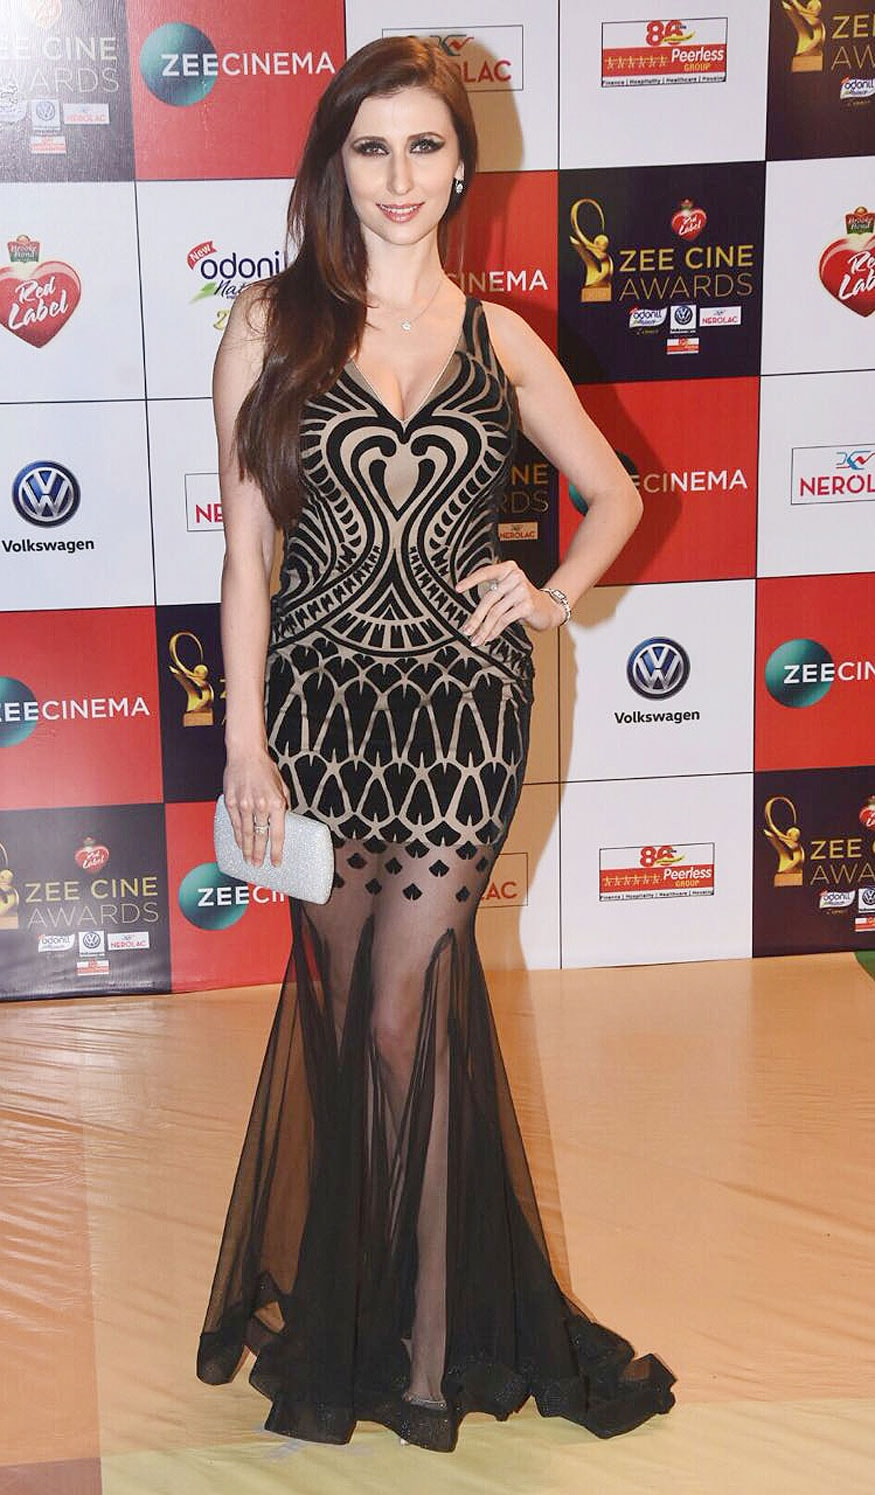 Zee Cine Awards 2018: Bollywood Celebs Scorch the Red Carpet